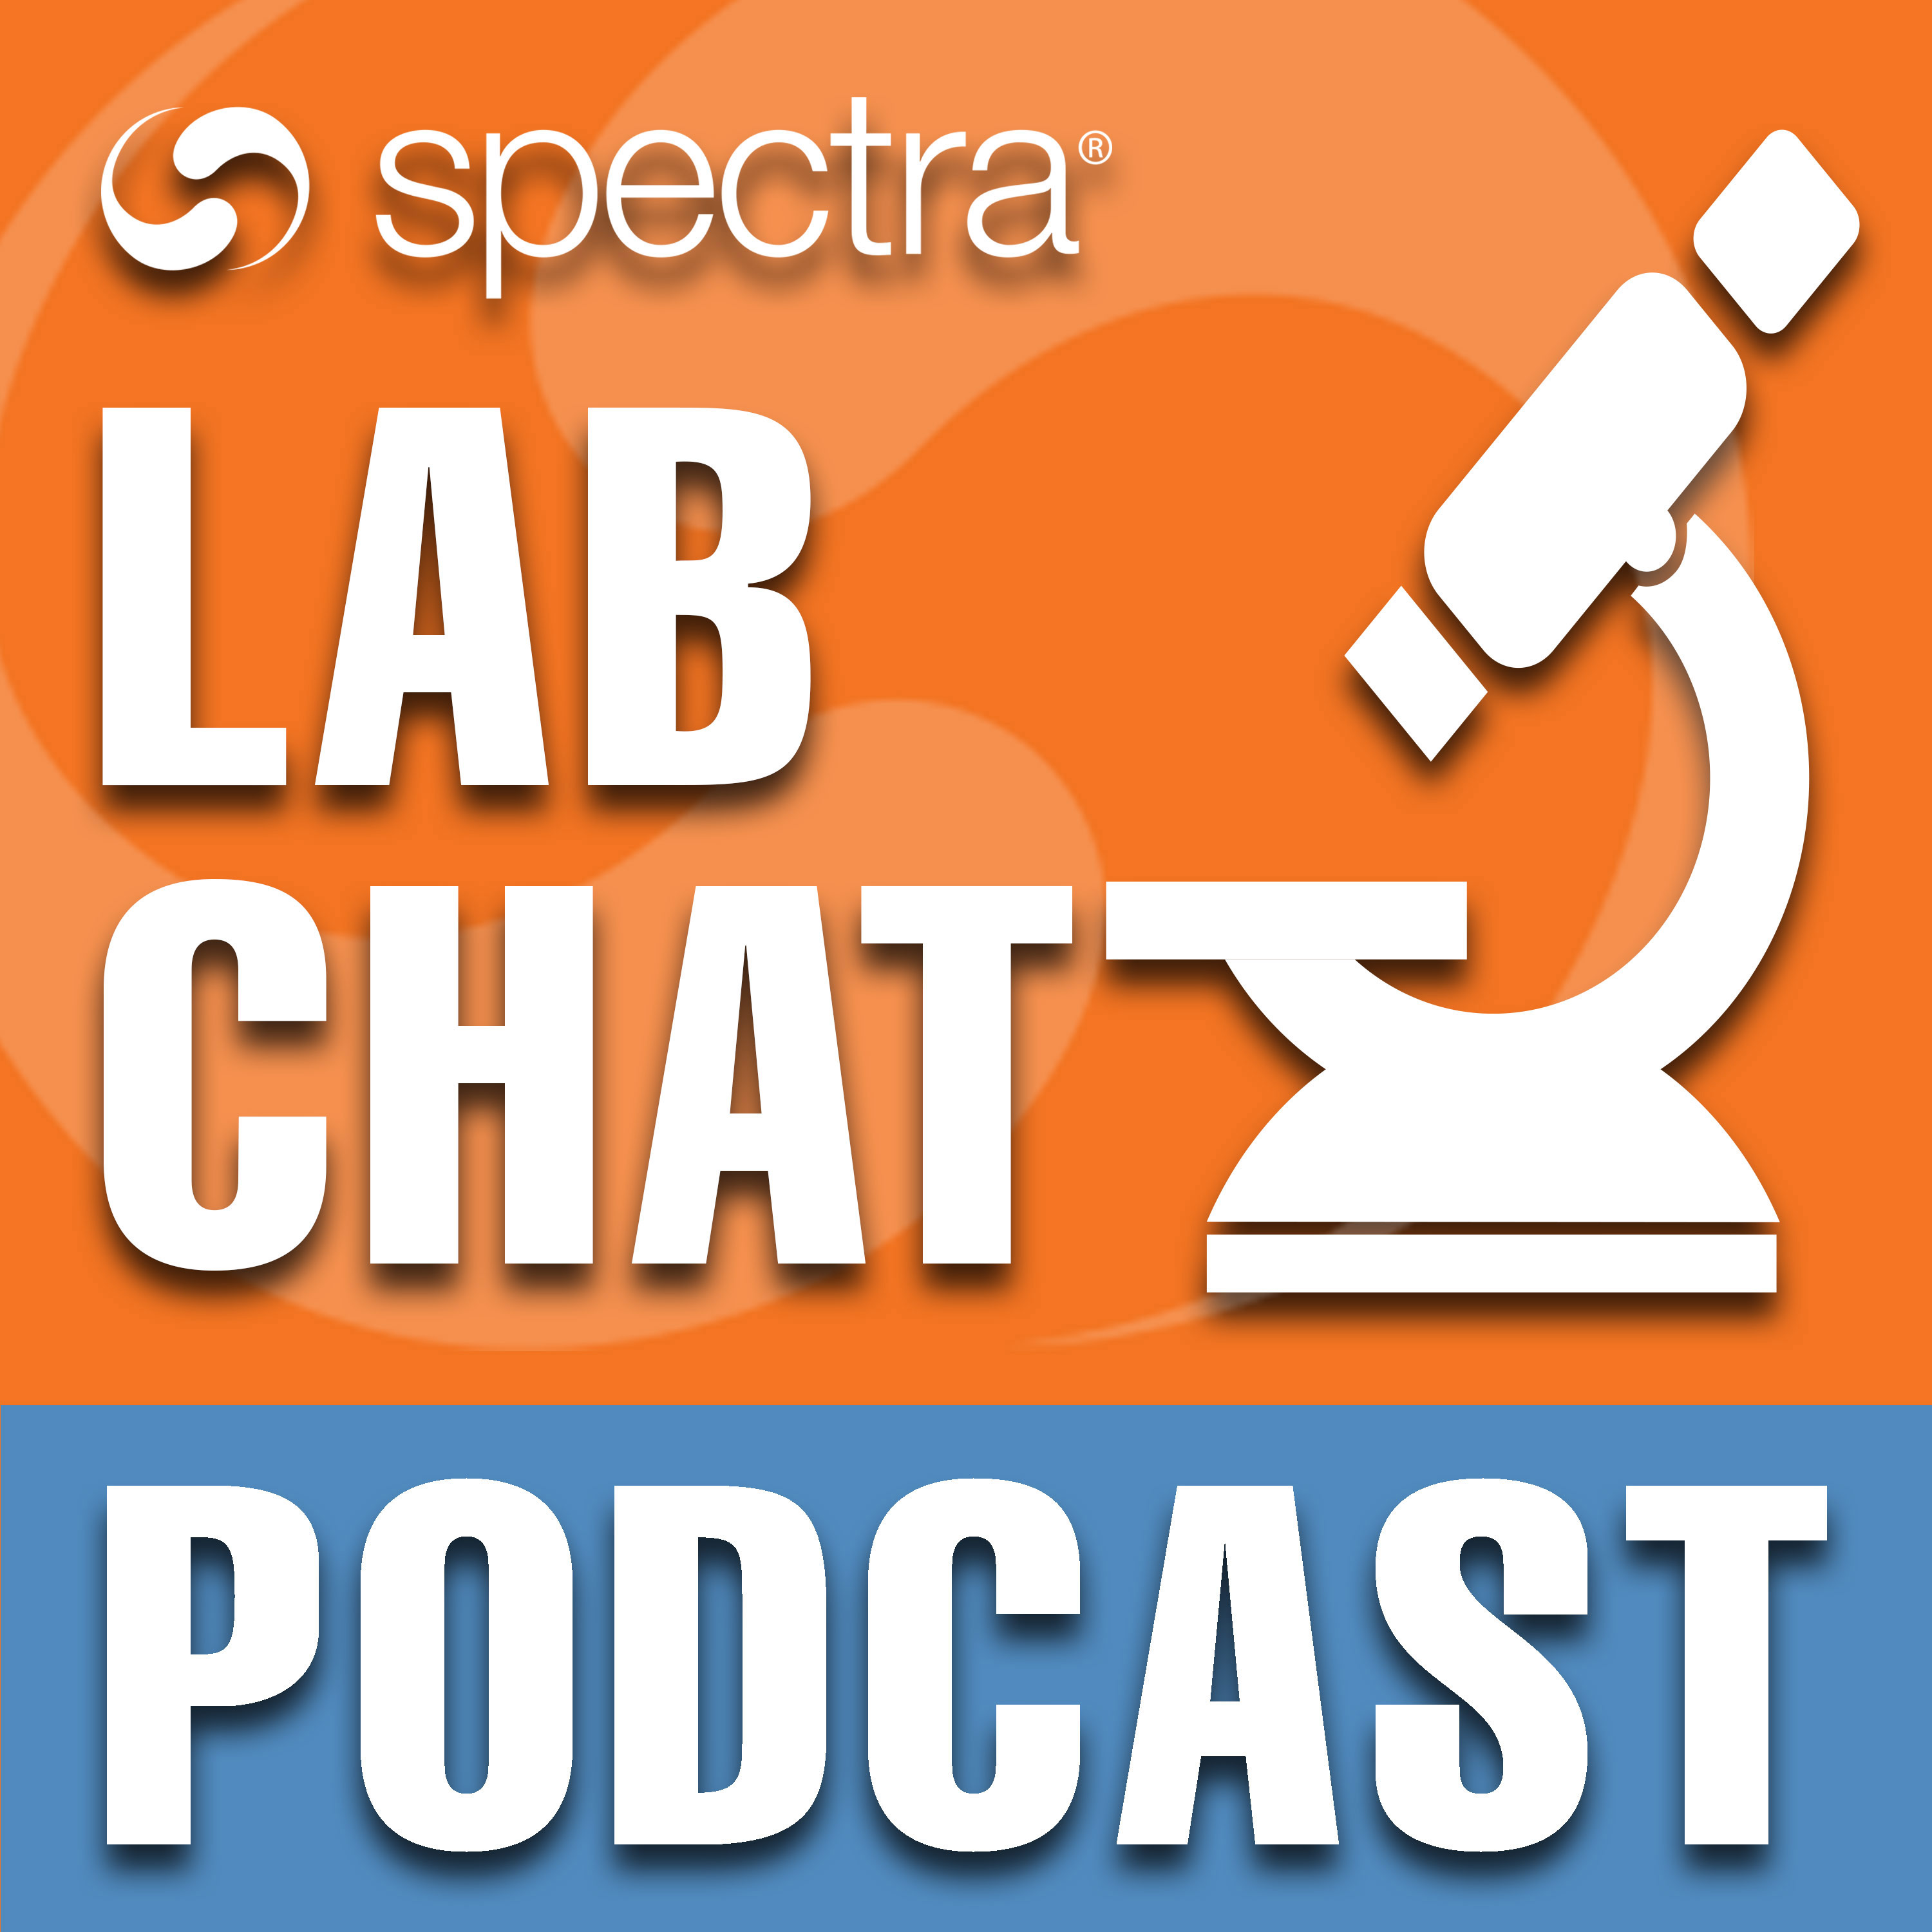 Spectra Lab Chat show art